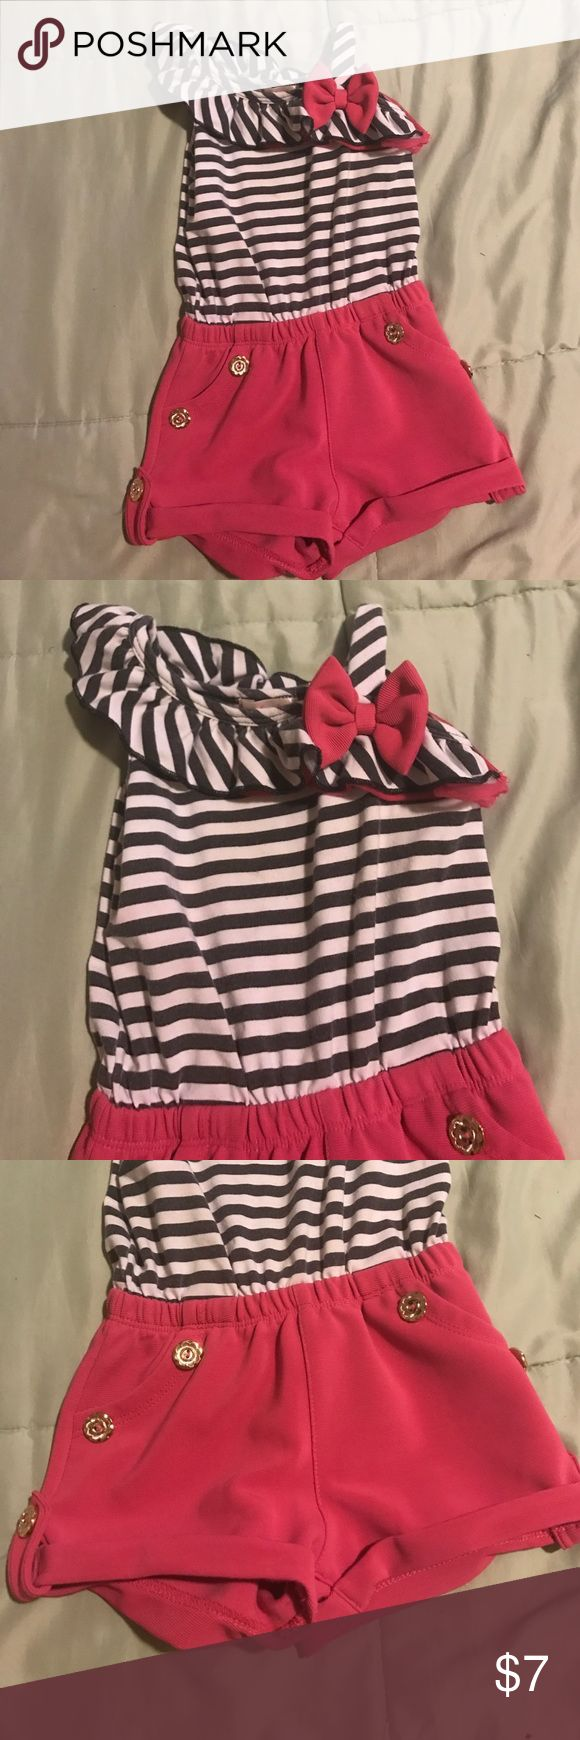 Hot pink, black and white stripe jumper Striped top with solid shorts.  A-symmetrical ruffle across the top with bow and strap make for super unique look. Tag says 3, but fits a 3T. Unik Matching Sets